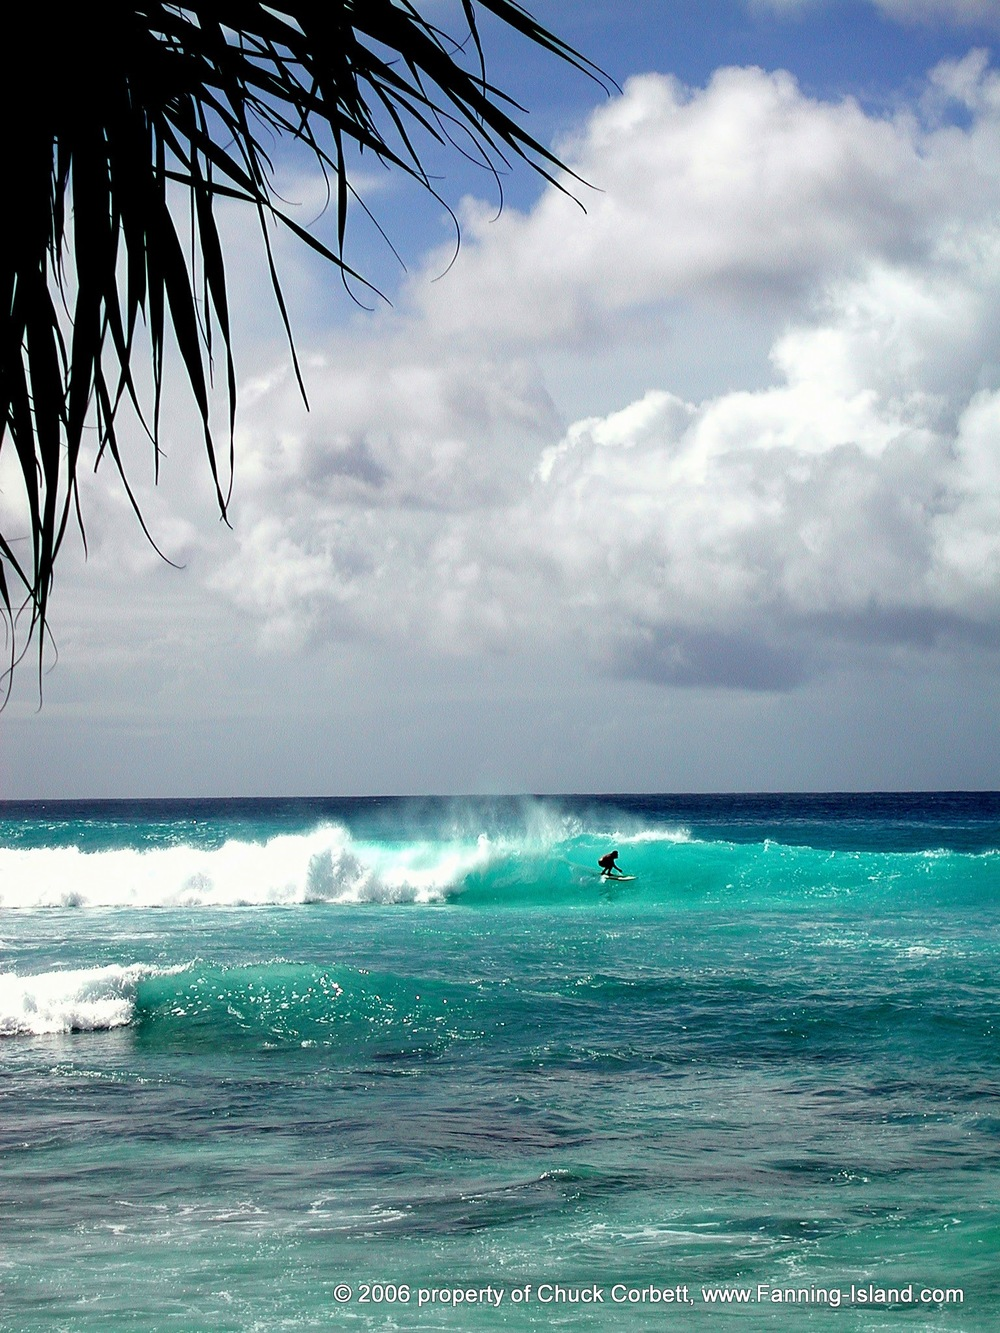 Fanning-Island-Resort epic surfing waves in the pacific ocean